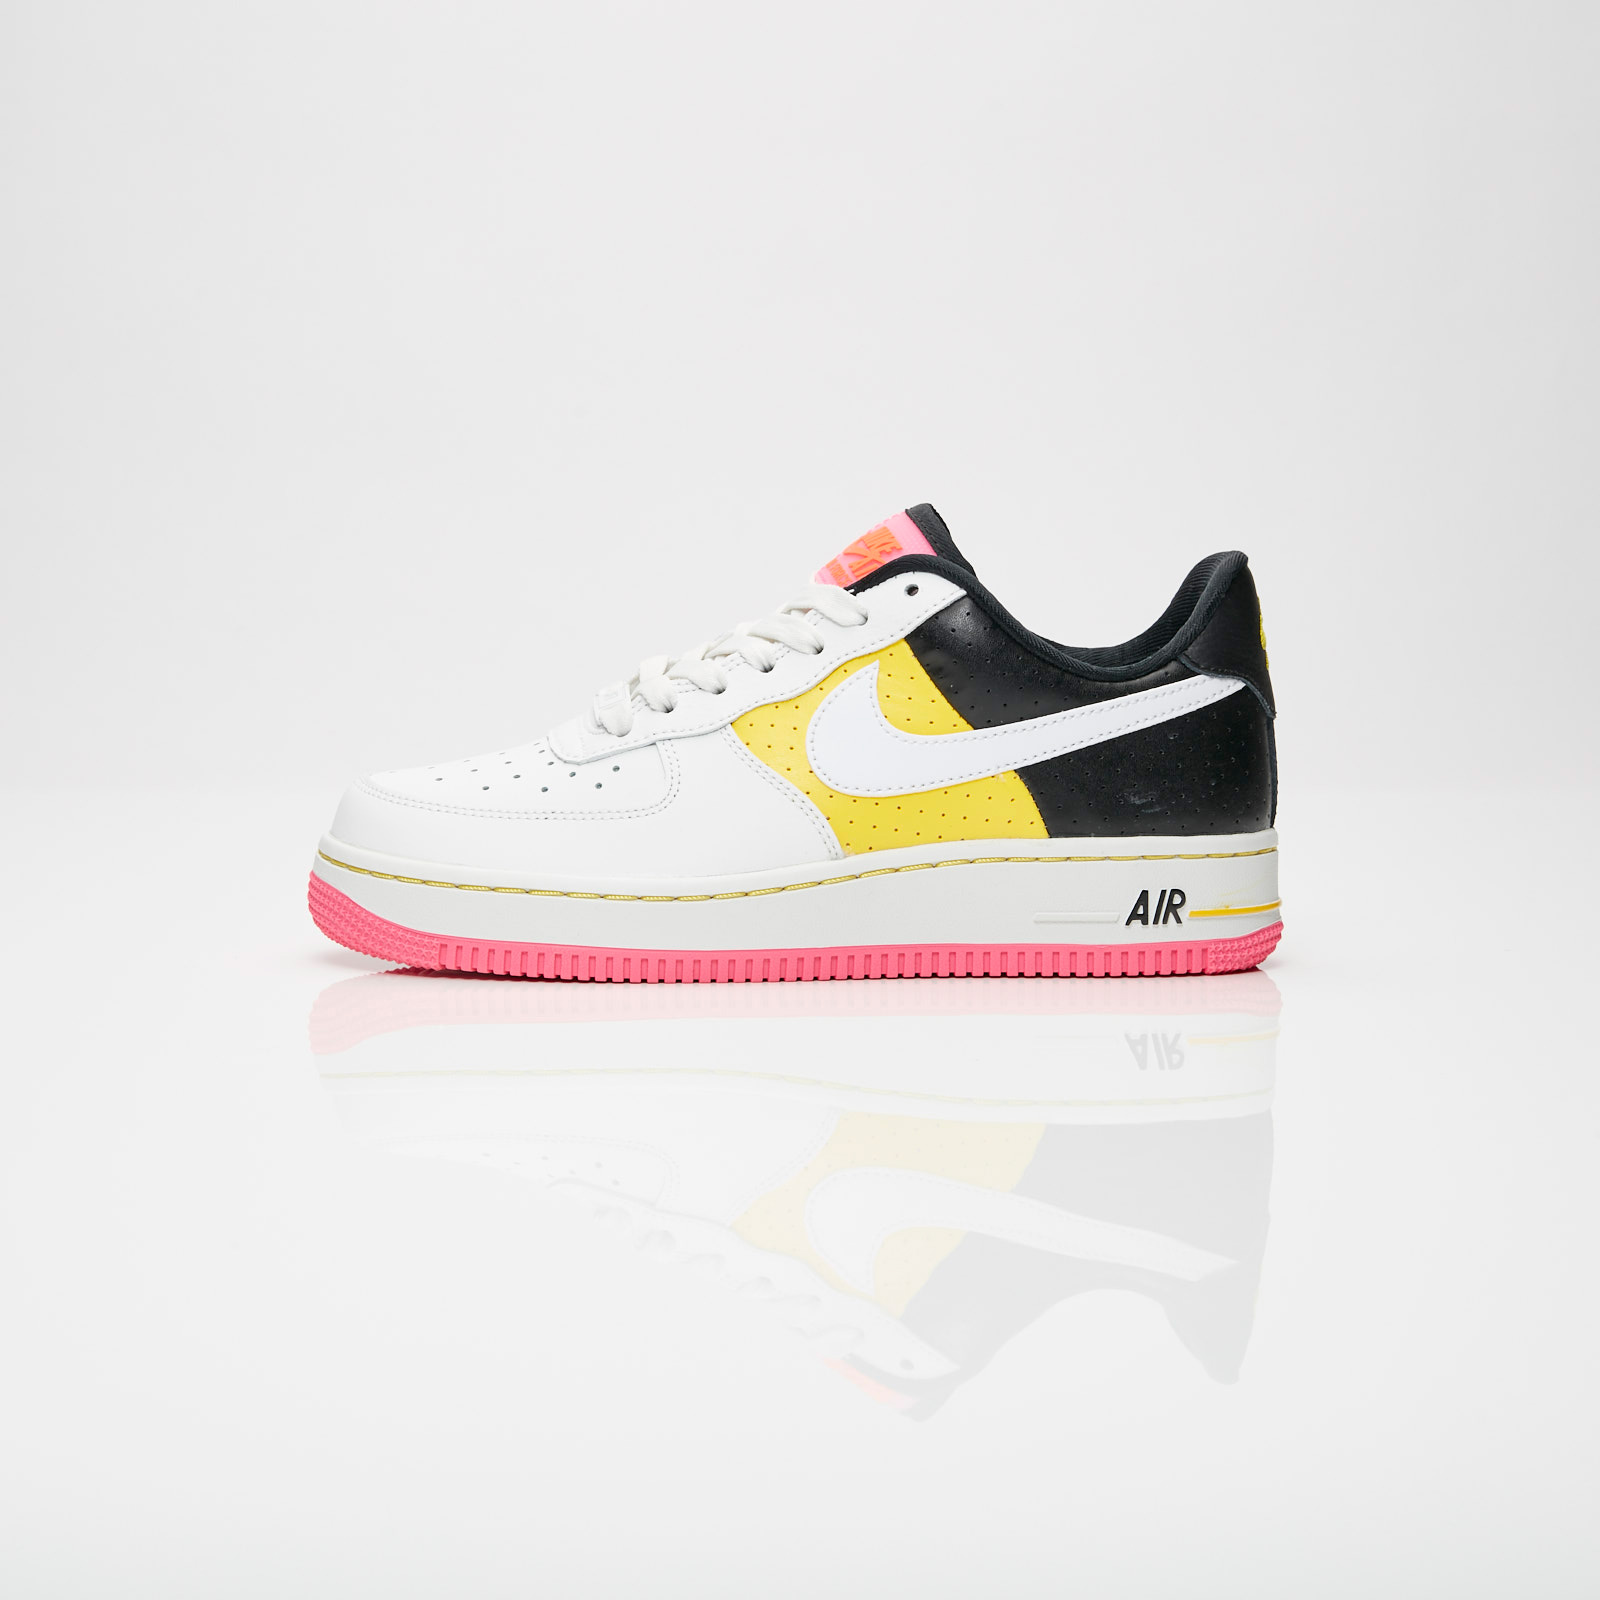 low priced 14e03 8c0d6 Nike Wmns Air Force 1 07 SE Moto - At2583-100 - Sneakersnstuff   sneakers    streetwear på nätet sen 1999